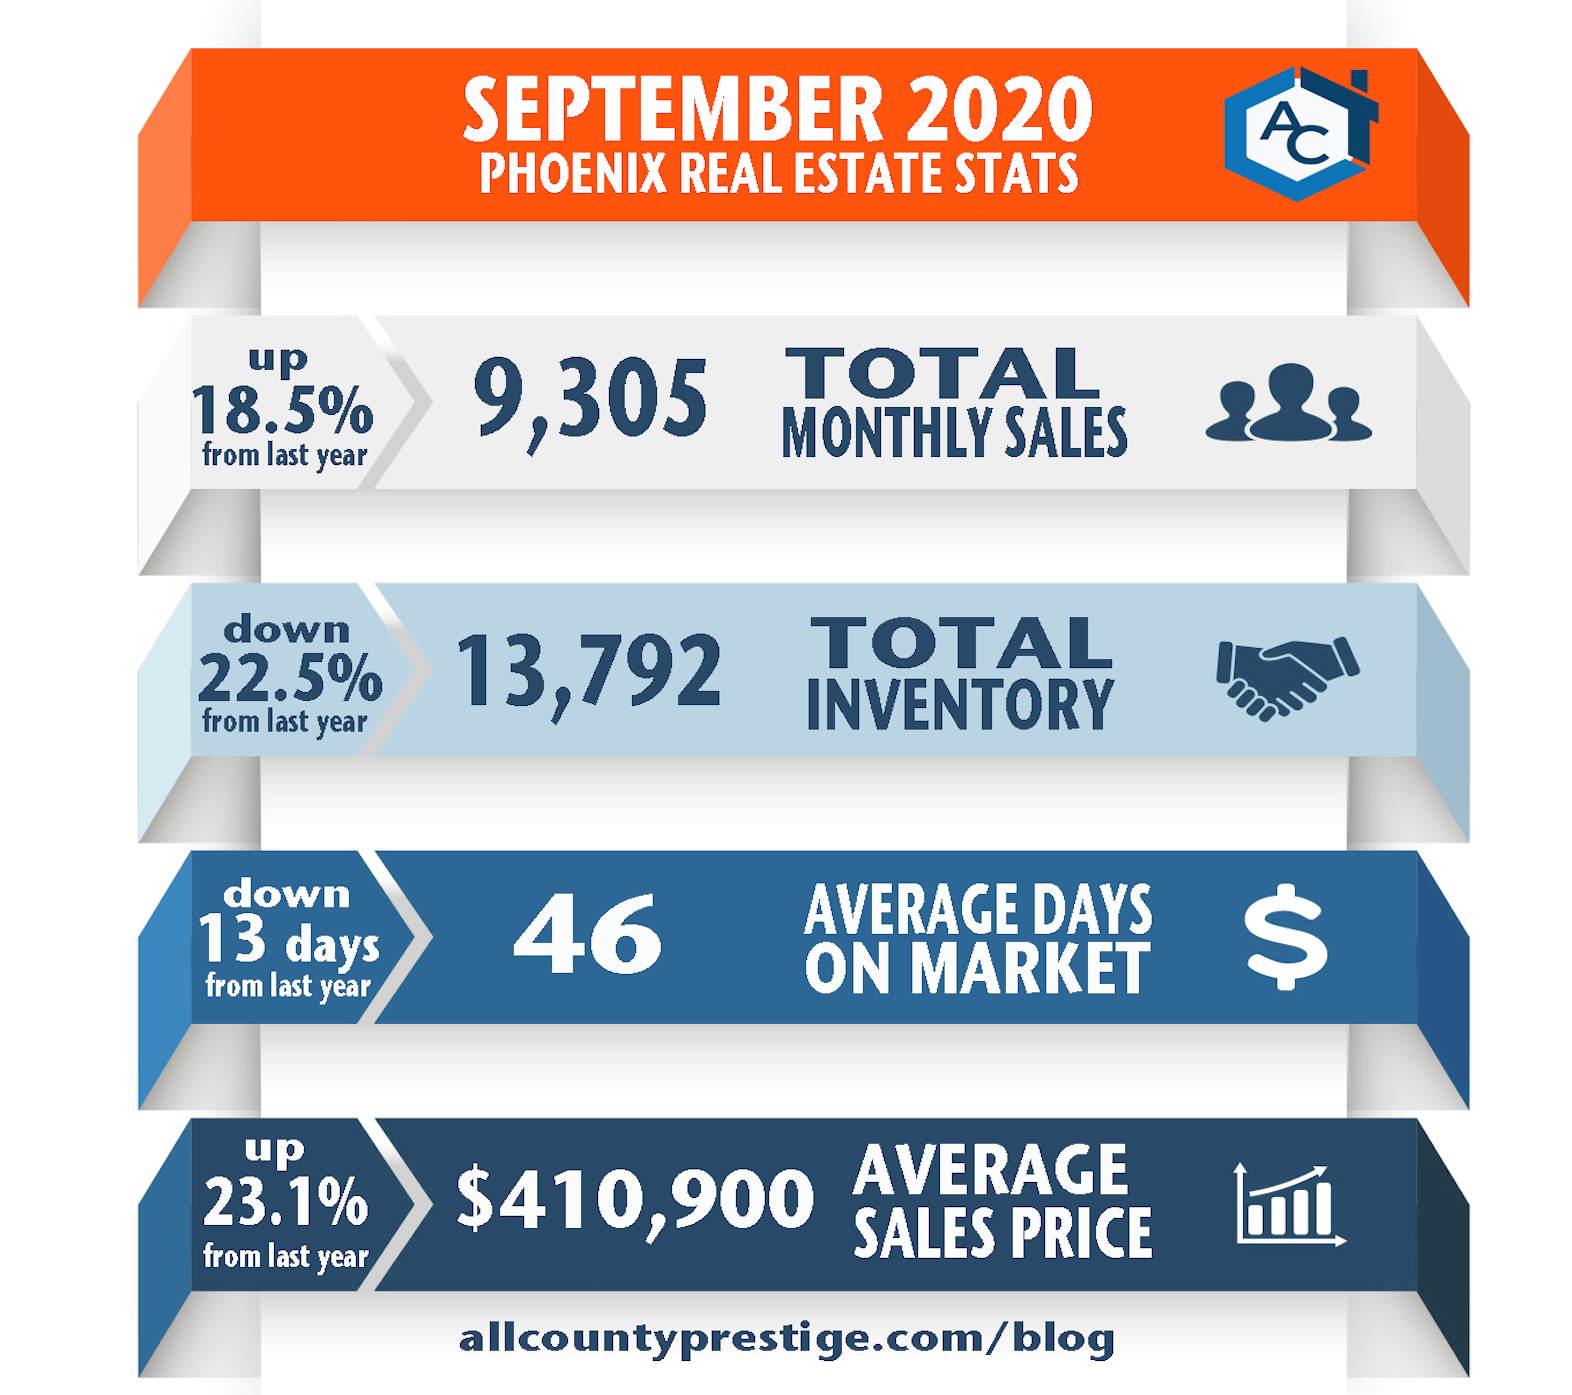 September 2020 Phoenix Real Estate Statistics